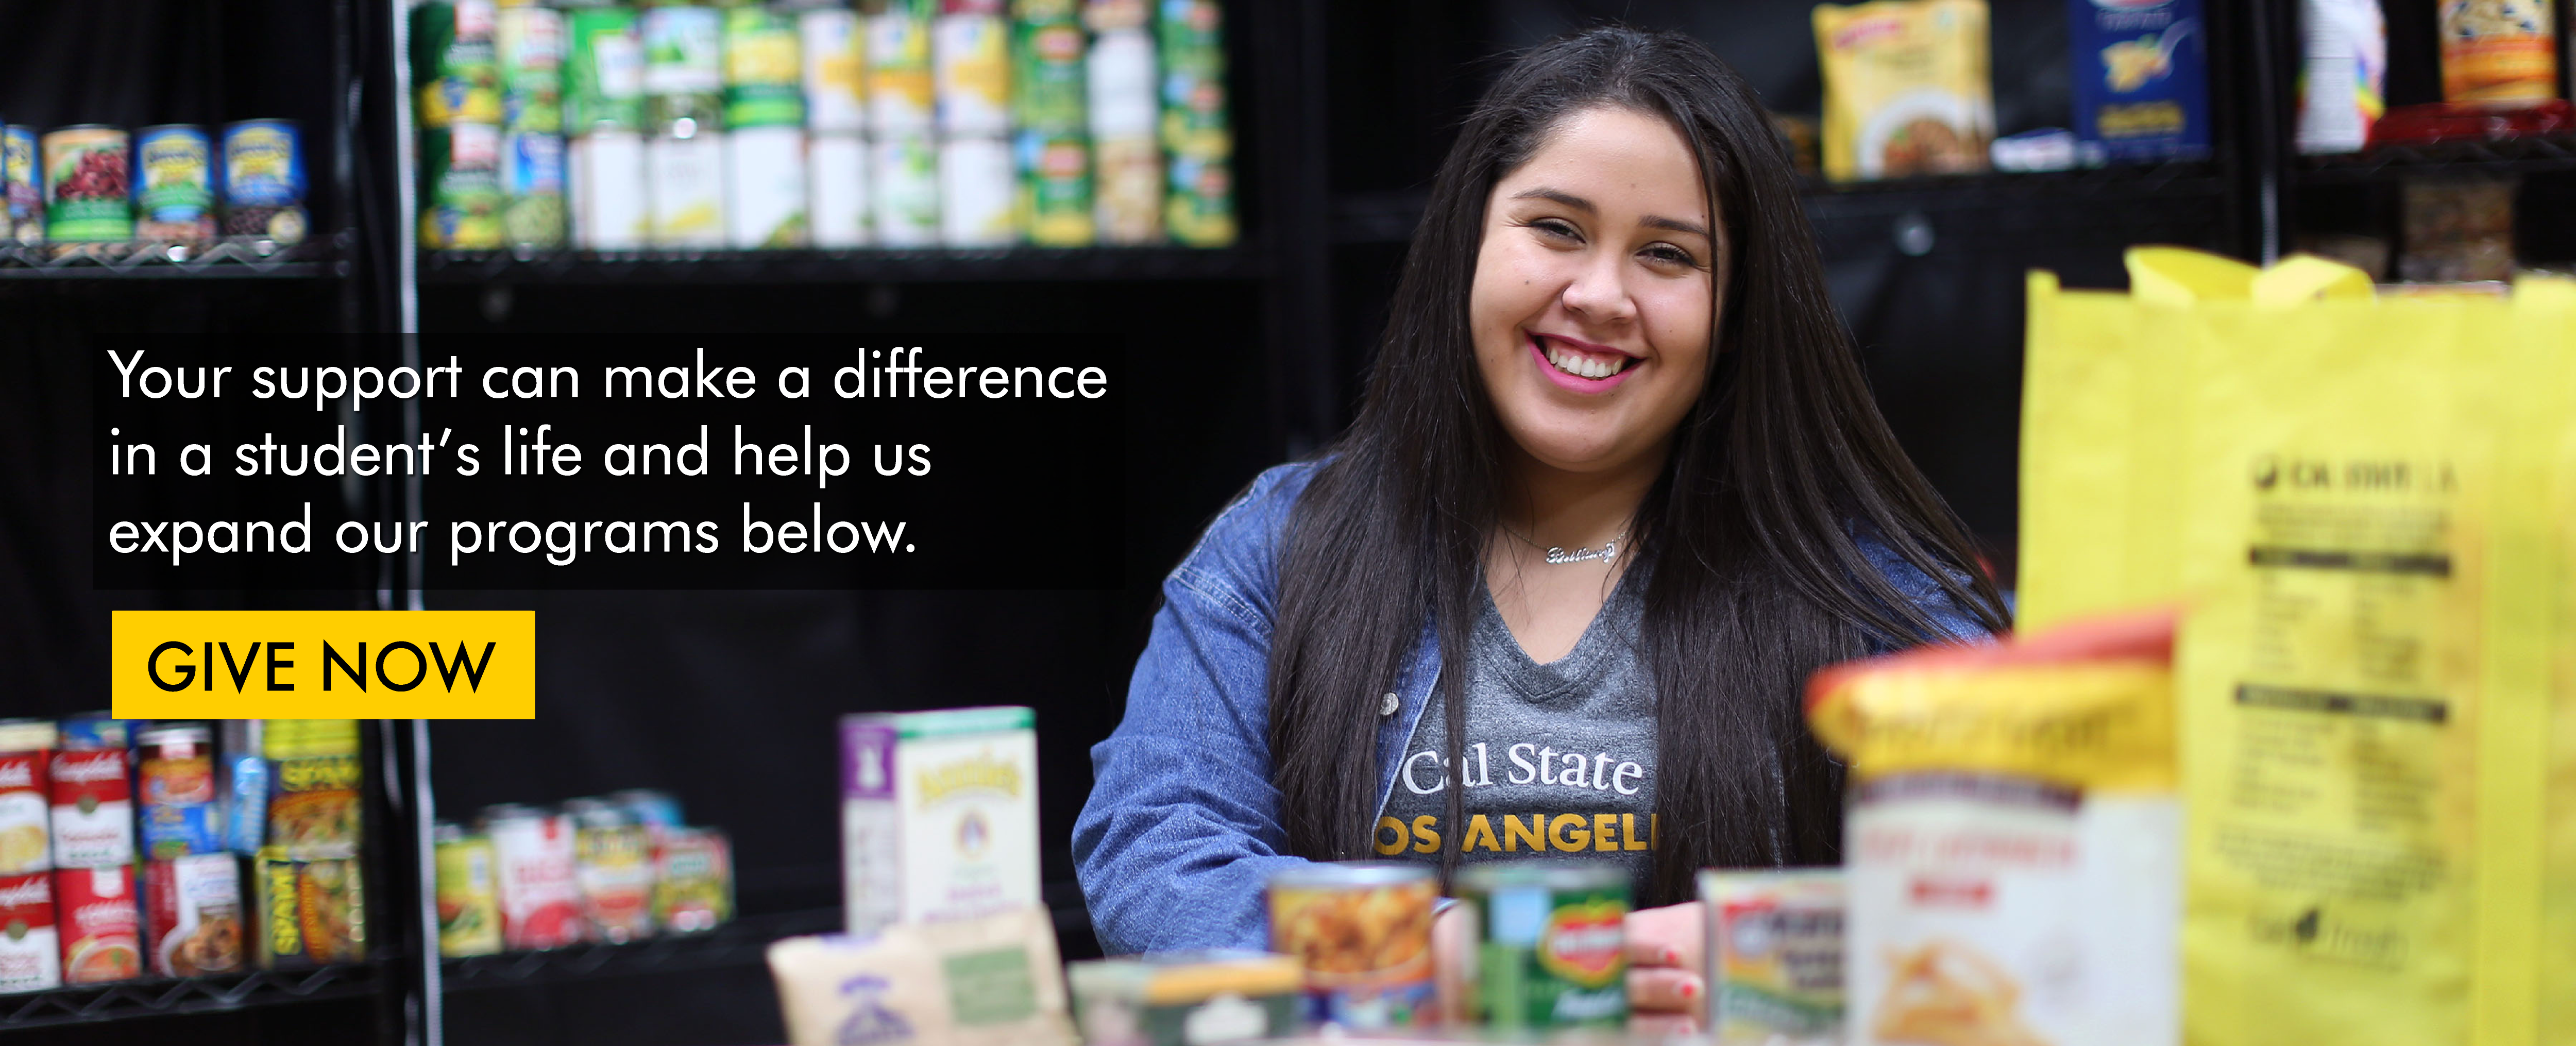 Cal State LA Supports Student's basic needs